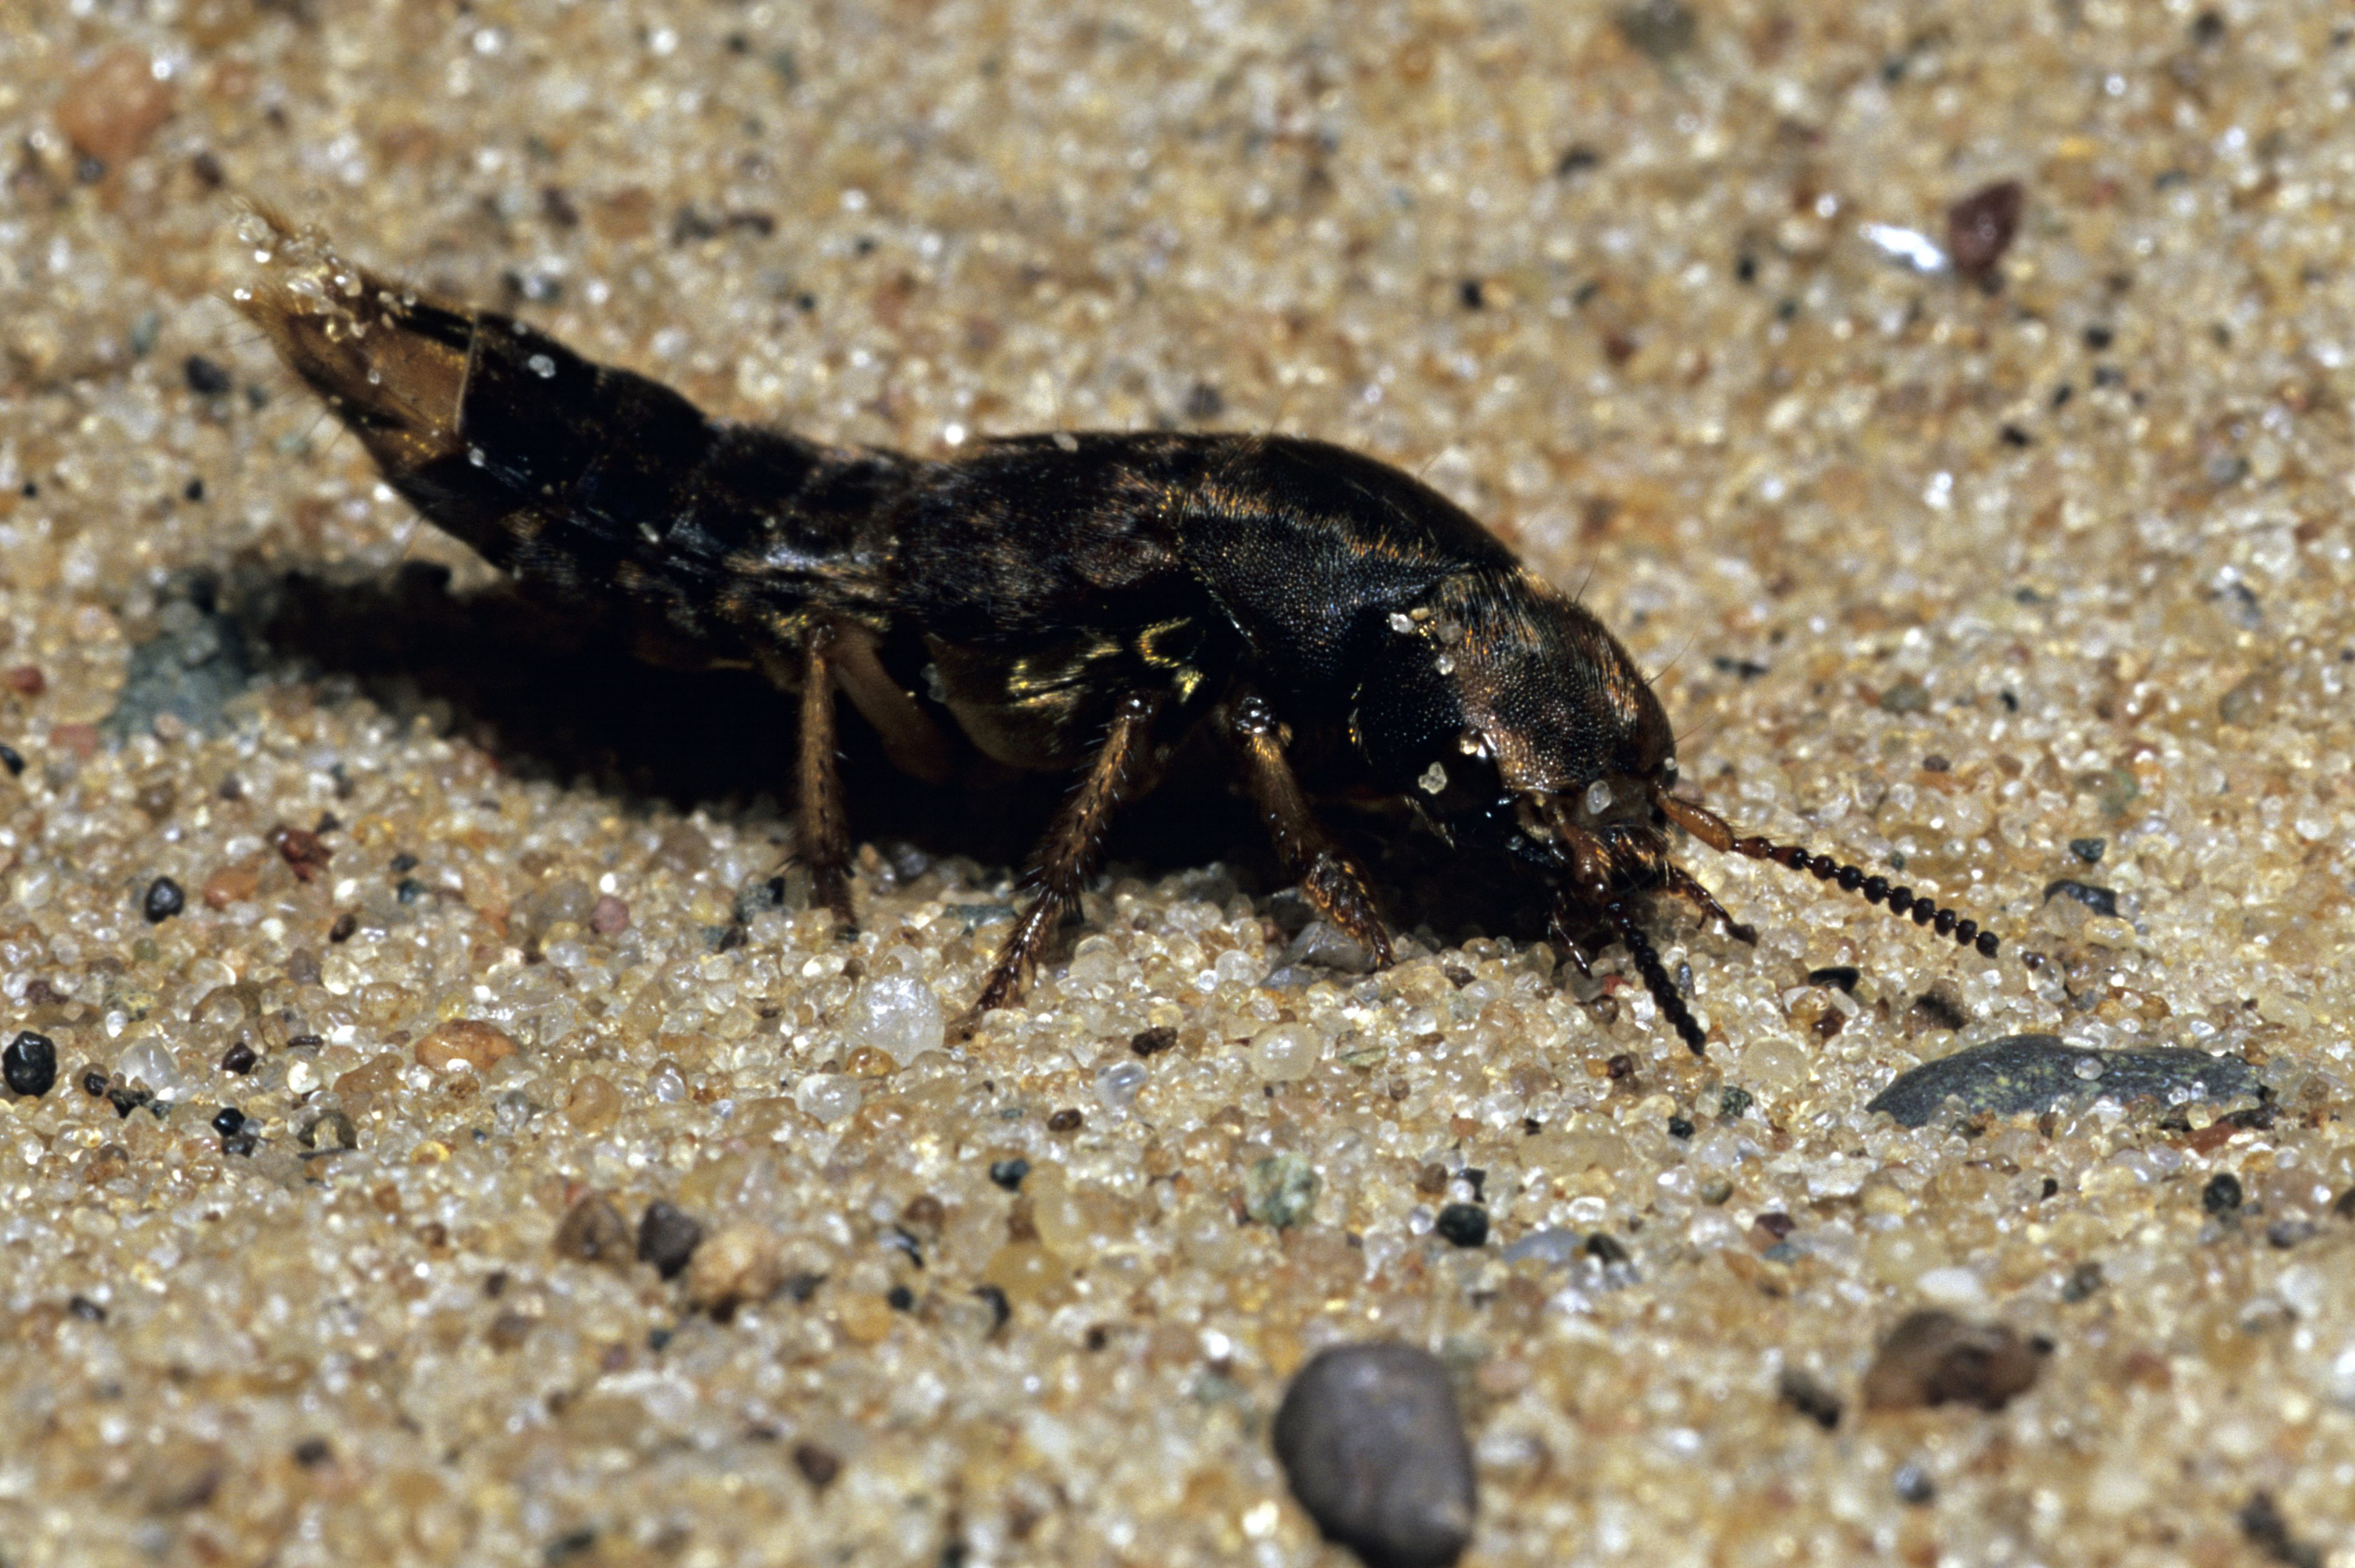 Spotted rove beetle